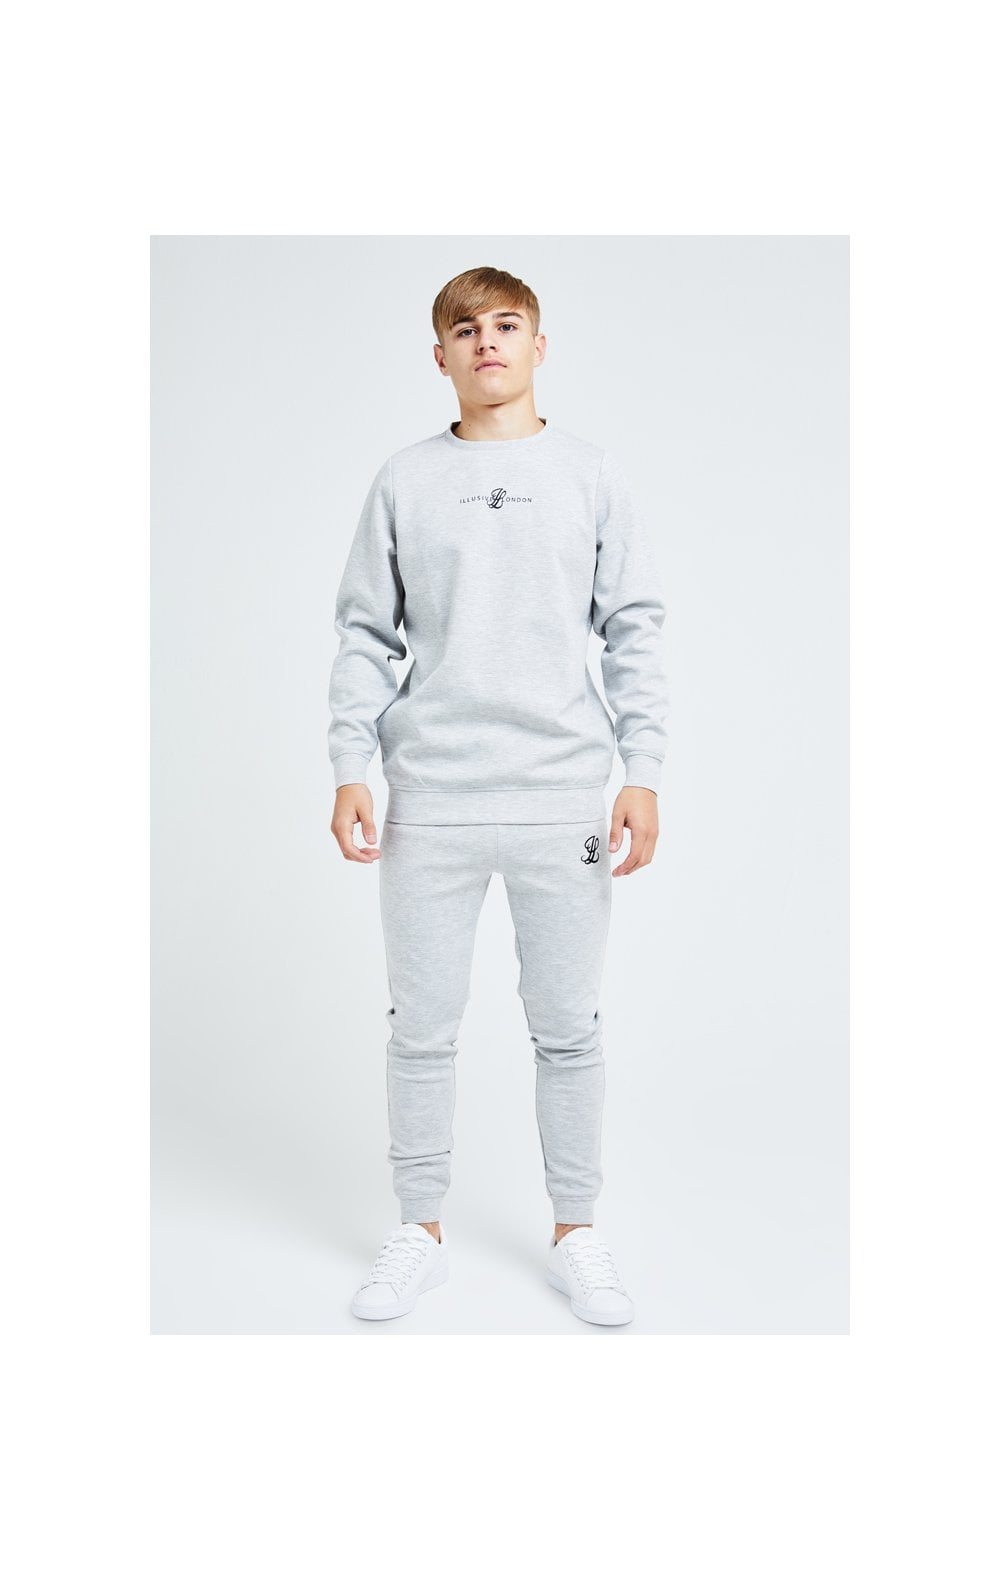 Illusive London Dual Crew Sweater - Grey (4)